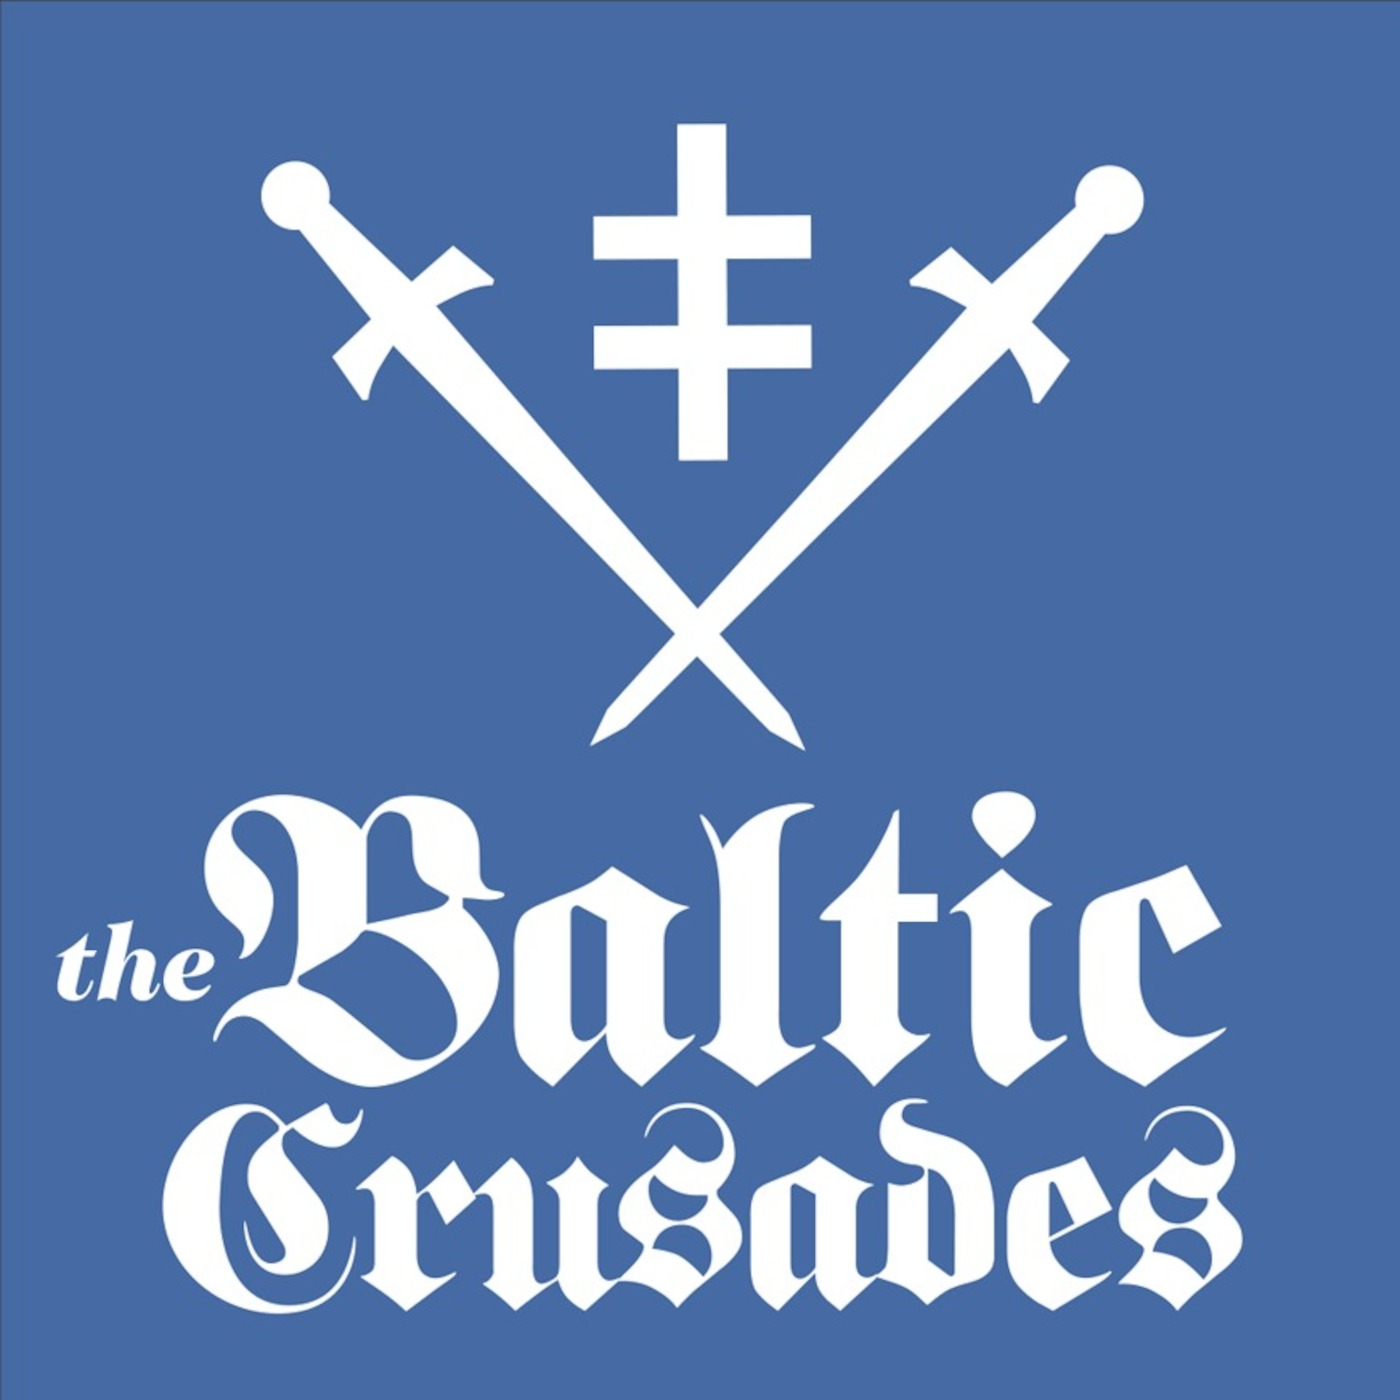 Episode 276 - The Baltic Crusades